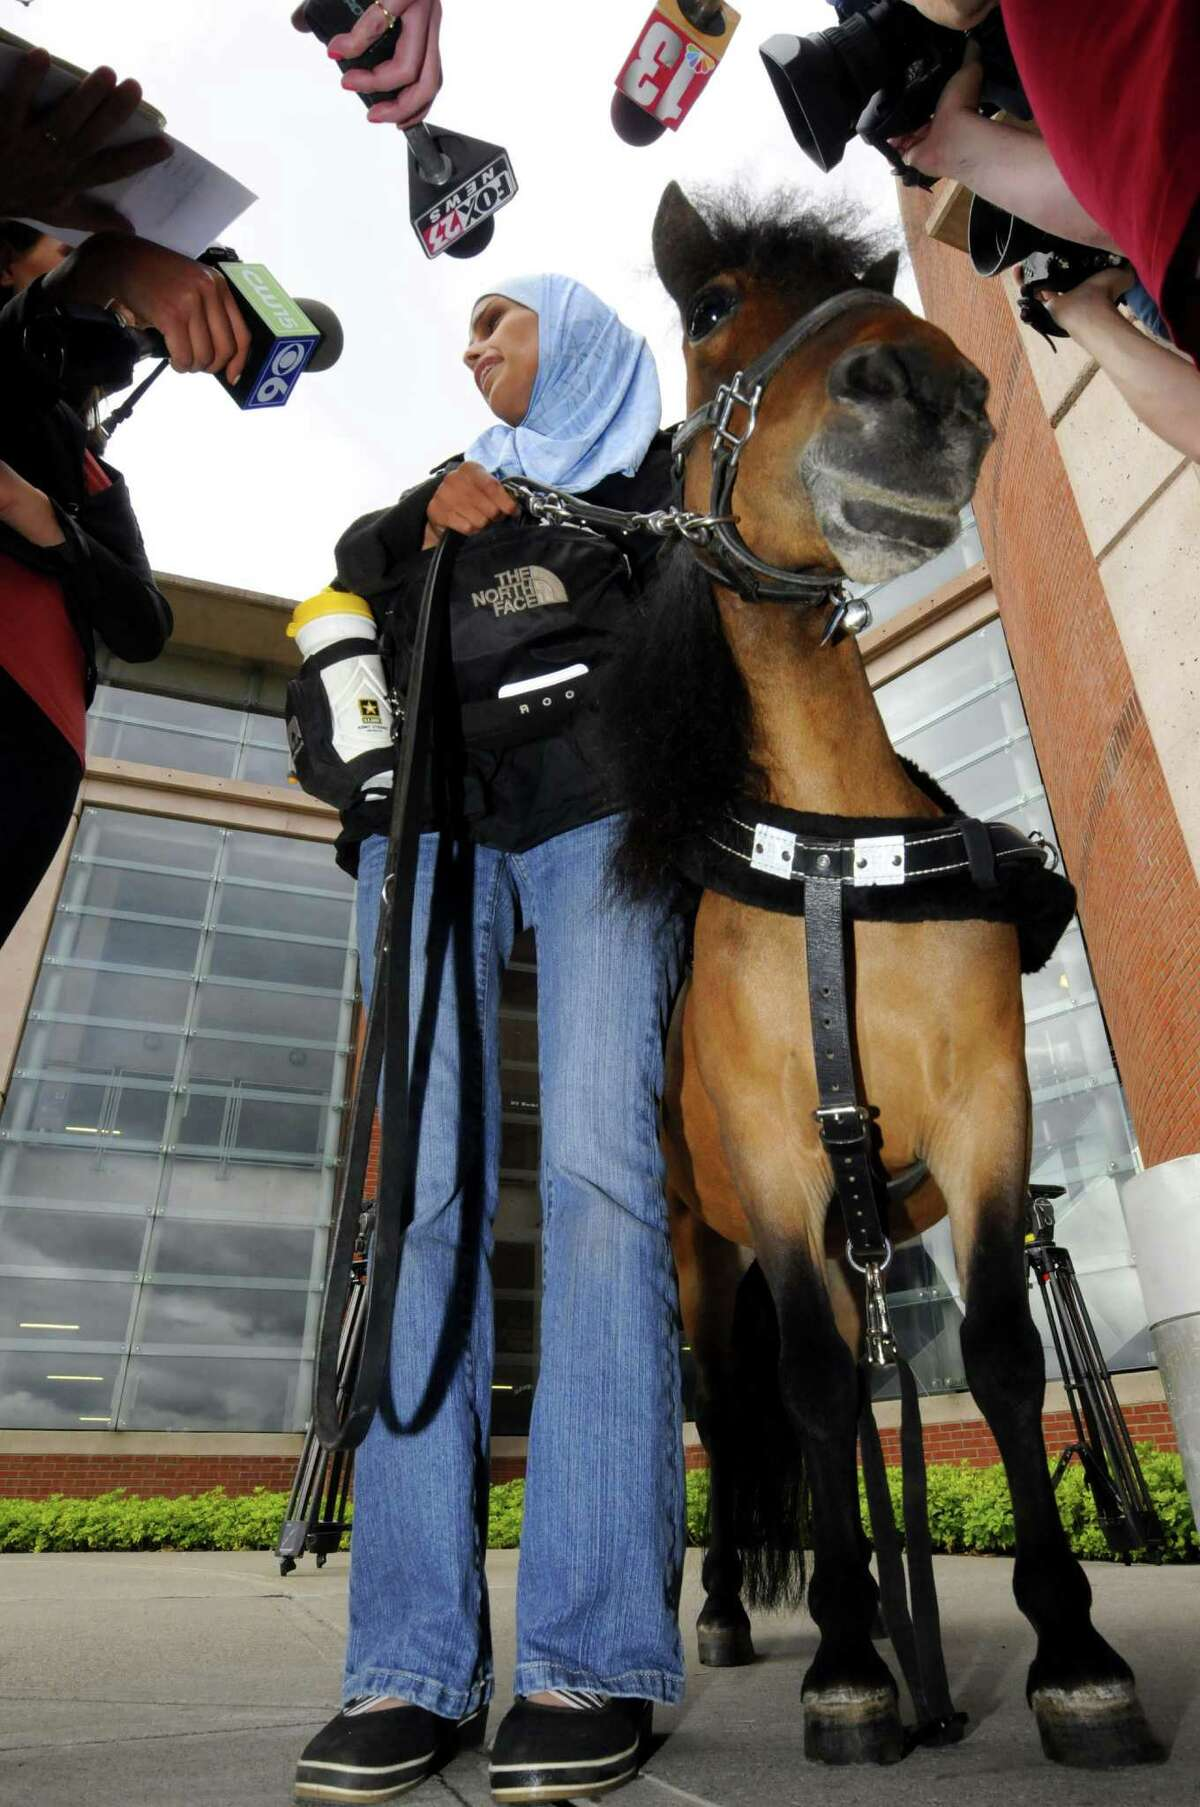 Mona Ramouni, who is blind, talks with local media following her at Albany International Airport with Cali her guide horse in Colonie N.Y. Tuesday June 26, 2012. (Michael P. Farrell/Times Union)